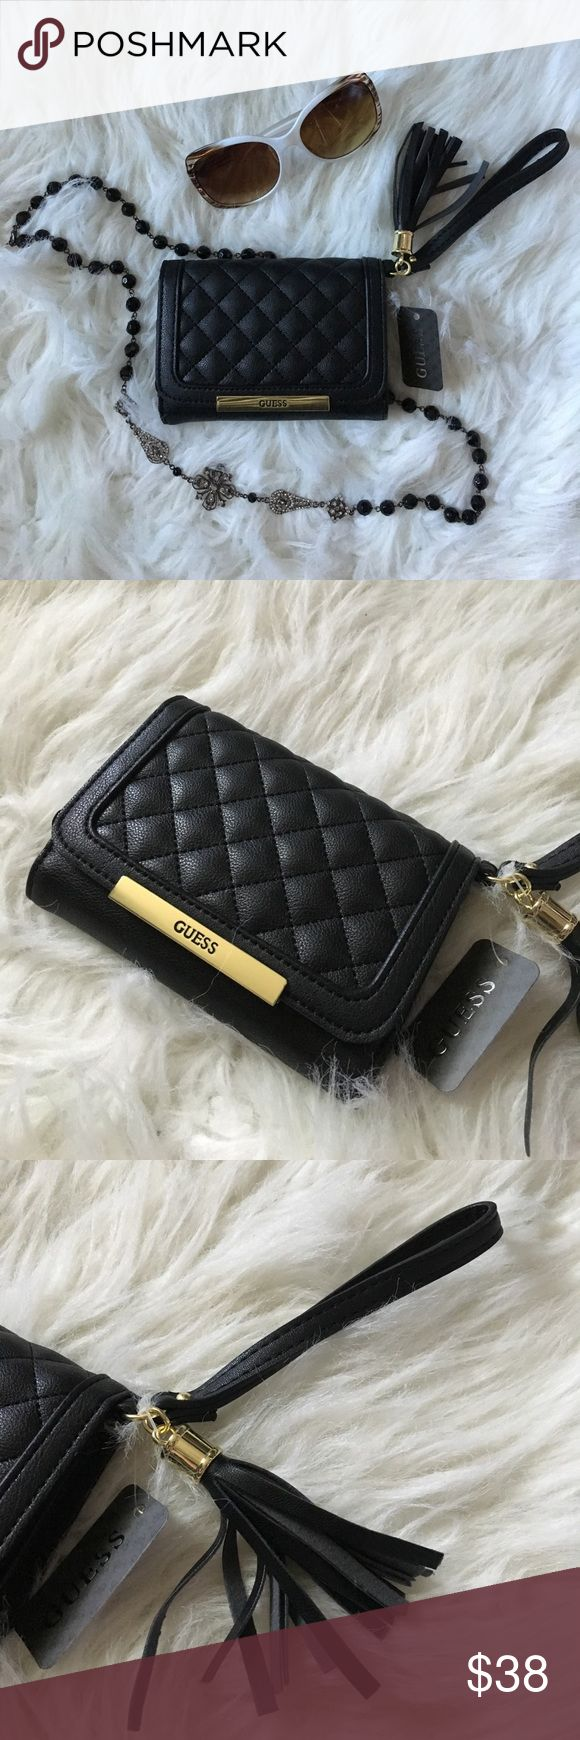 """GUESS, Quilted Cell Phone Wristlet GUESS, Quilted Cell Phone Wristlet   Beautiful Black Quilting Make up the front Flap of this Uber Chic Wristlet   Gold Hardware and Logo w. Tassel Accent   Three card slots + Window and a Larger Slot behind Cell Phone Sleeve • Measures 5.5"""" L x 4"""" H x 1.25"""" D closed 📱 Fits iPhone 6/6S 💙 Reasonable Offers Please Guess Bags Clutches & Wristlets"""